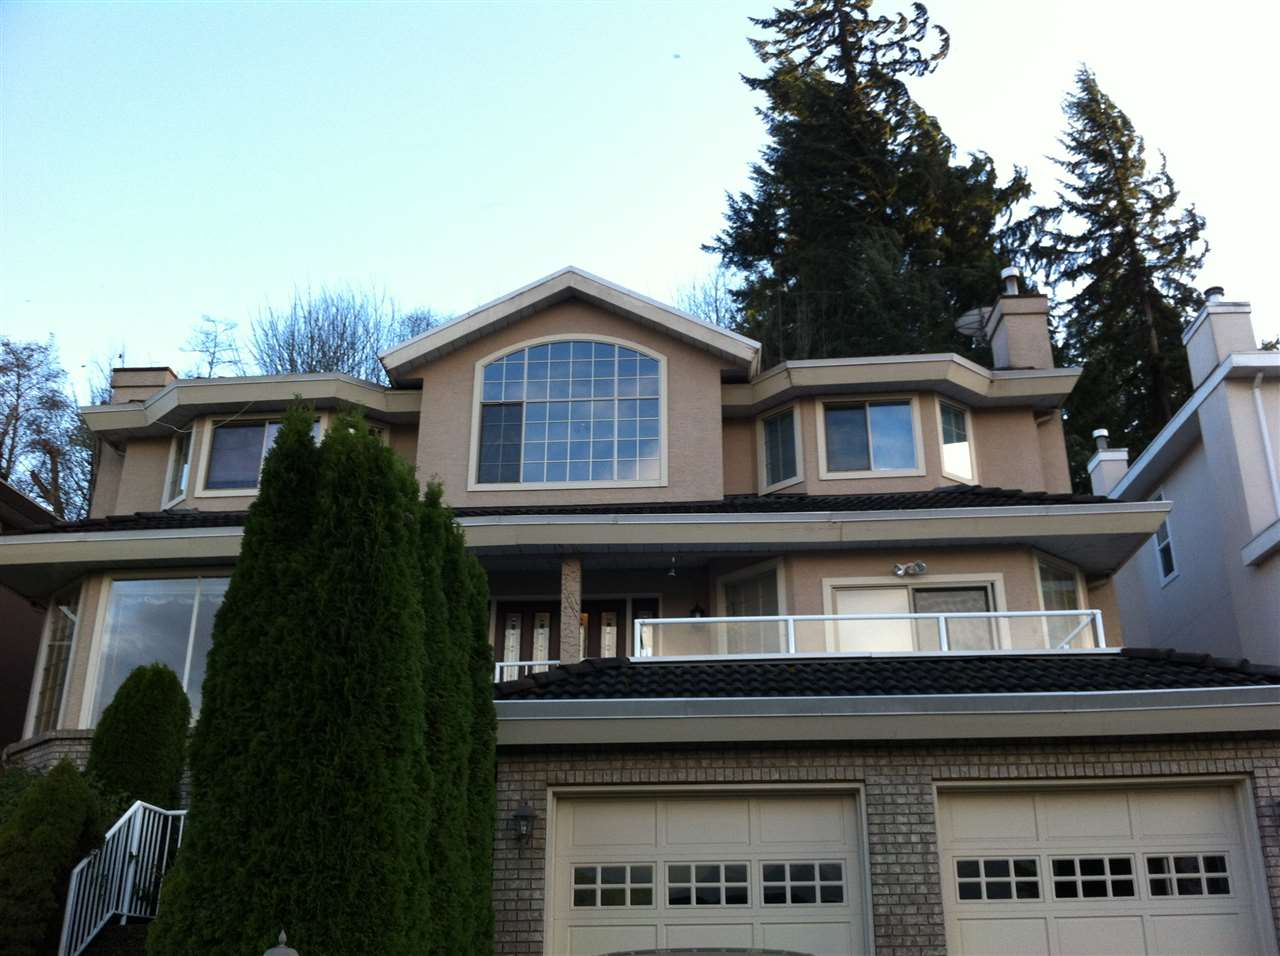 Main Photo: 20 SHORELINE CIRCLE in Port Moody: College Park PM House for sale : MLS® # R2016142